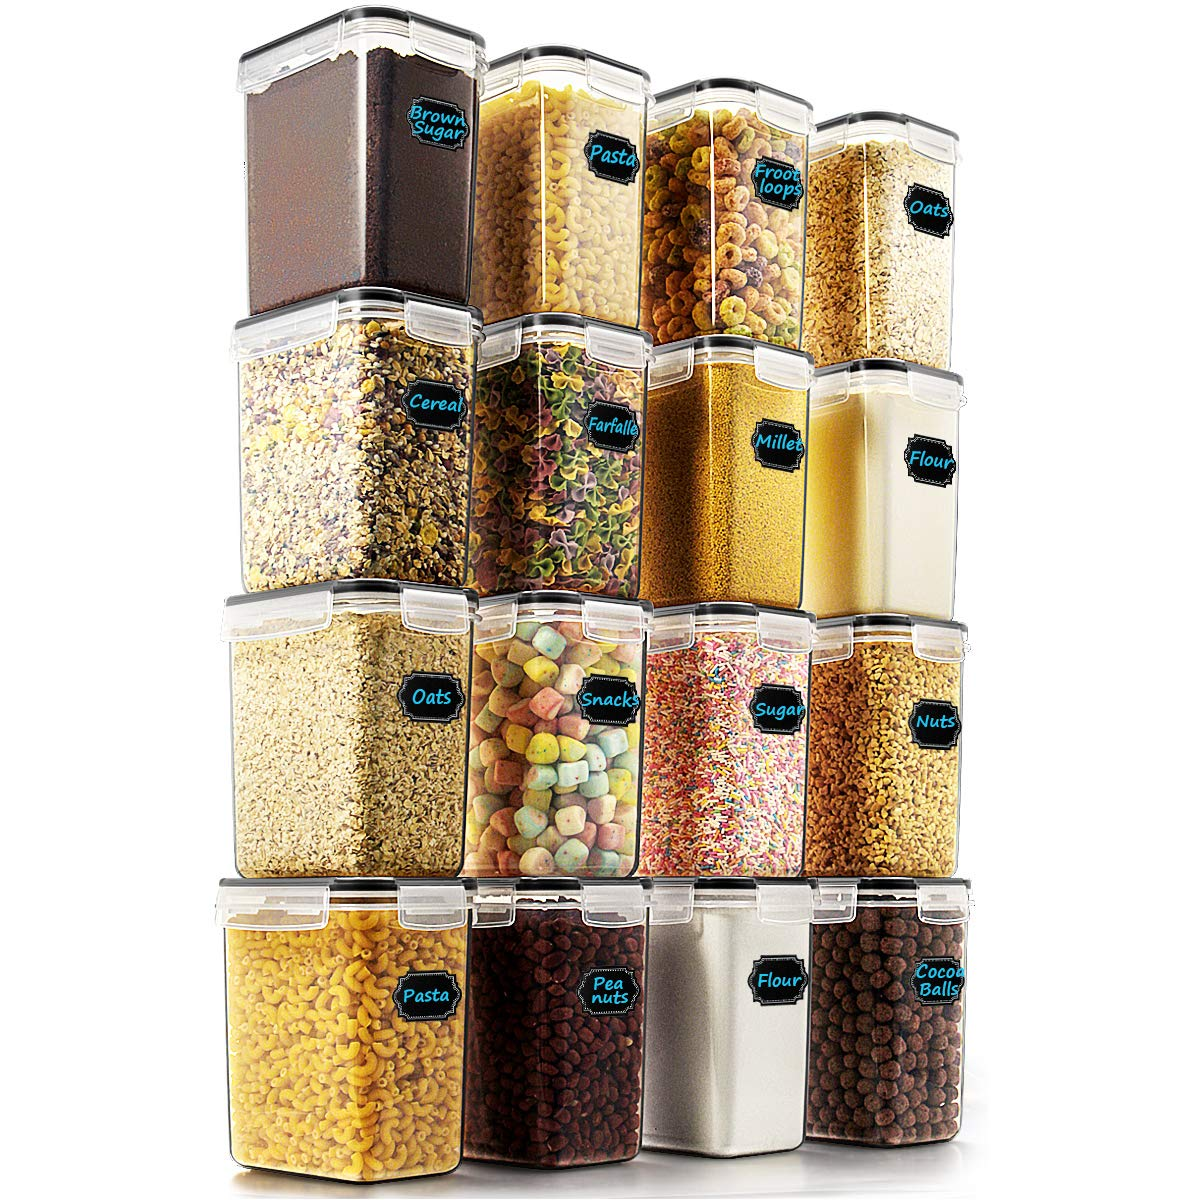 Airtight Food Storage Containers - Wildone Cereal & Dry Food Storage Container Set of 16 [54oz /1.6L] for Sugar, Flour and Baking Supplies, Leak-proof & BPA Free, with 20 Labels & 1 Marker